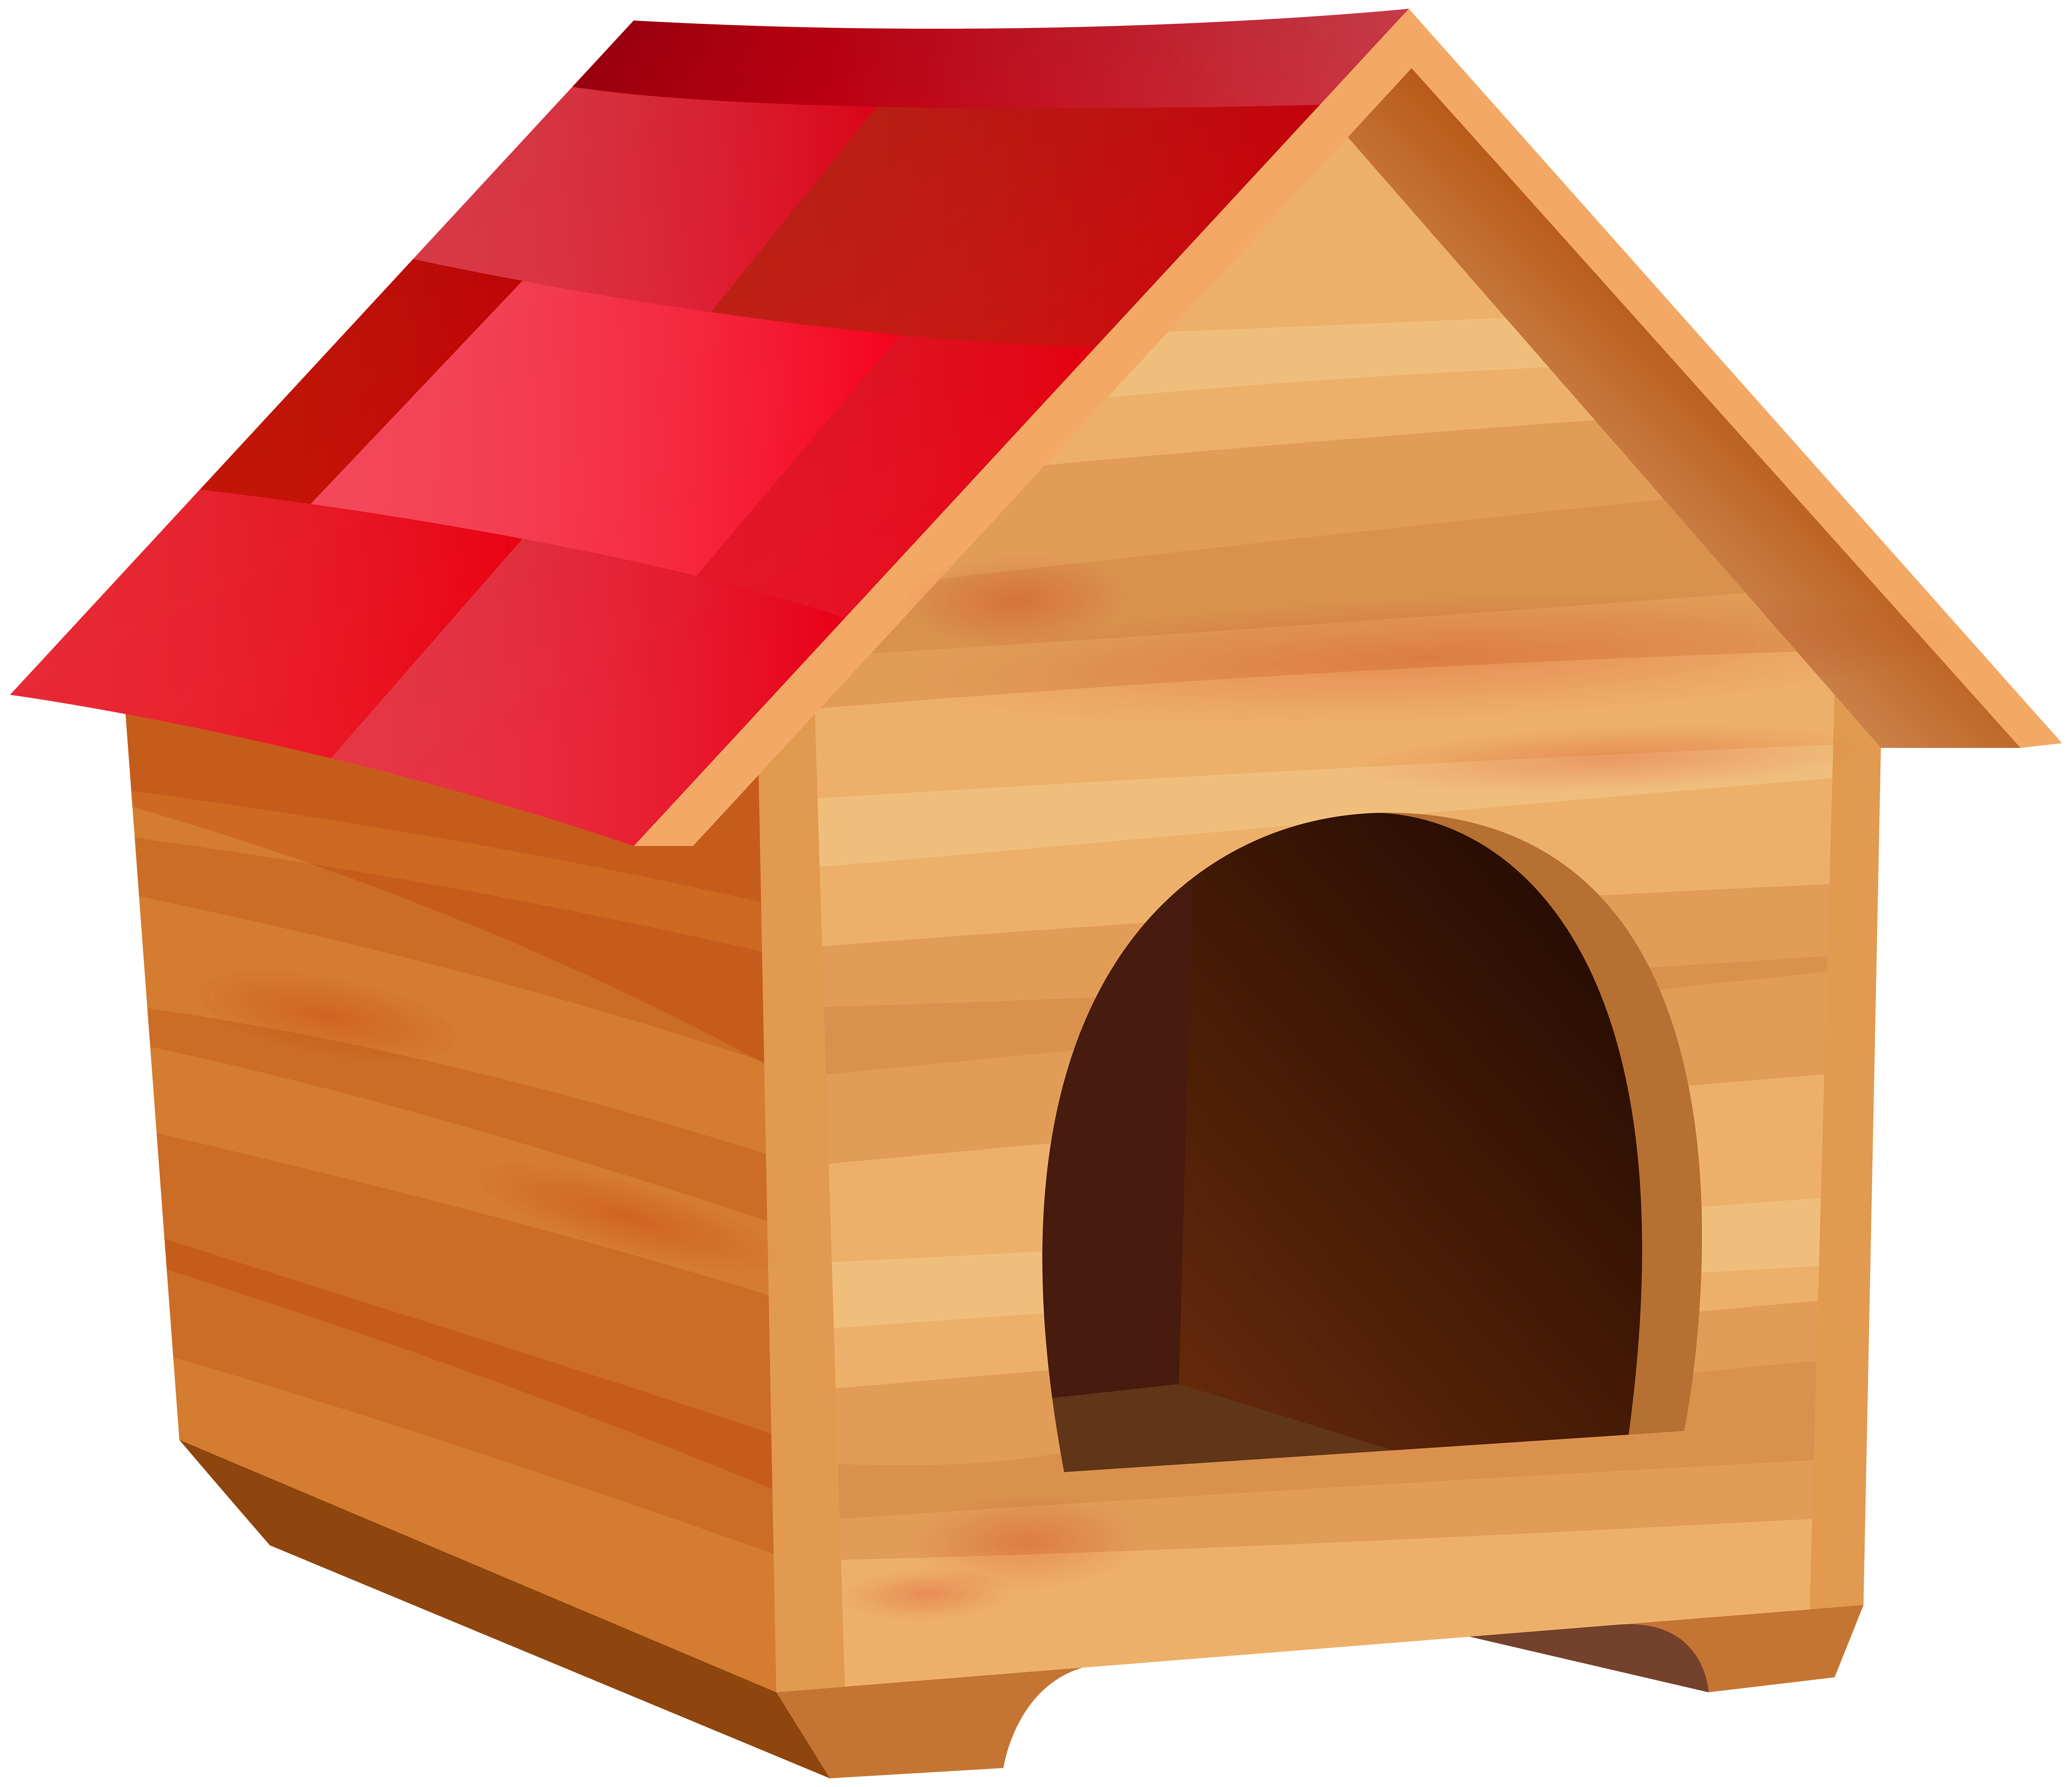 Dog house png. Doghouse clip art clipart